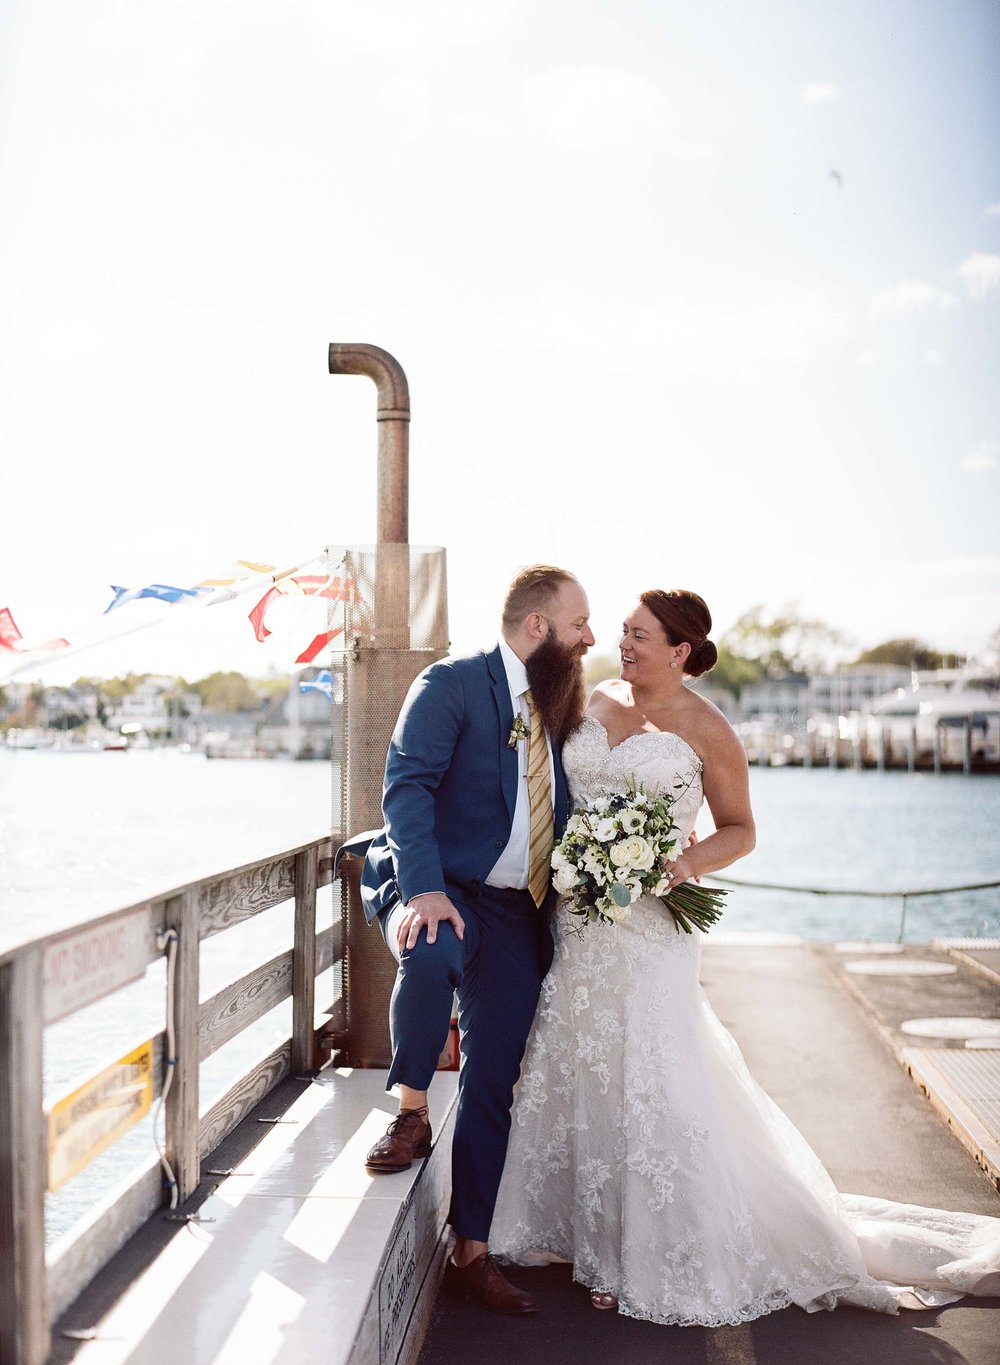 Marthas-vineyard-wedding-36.jpg